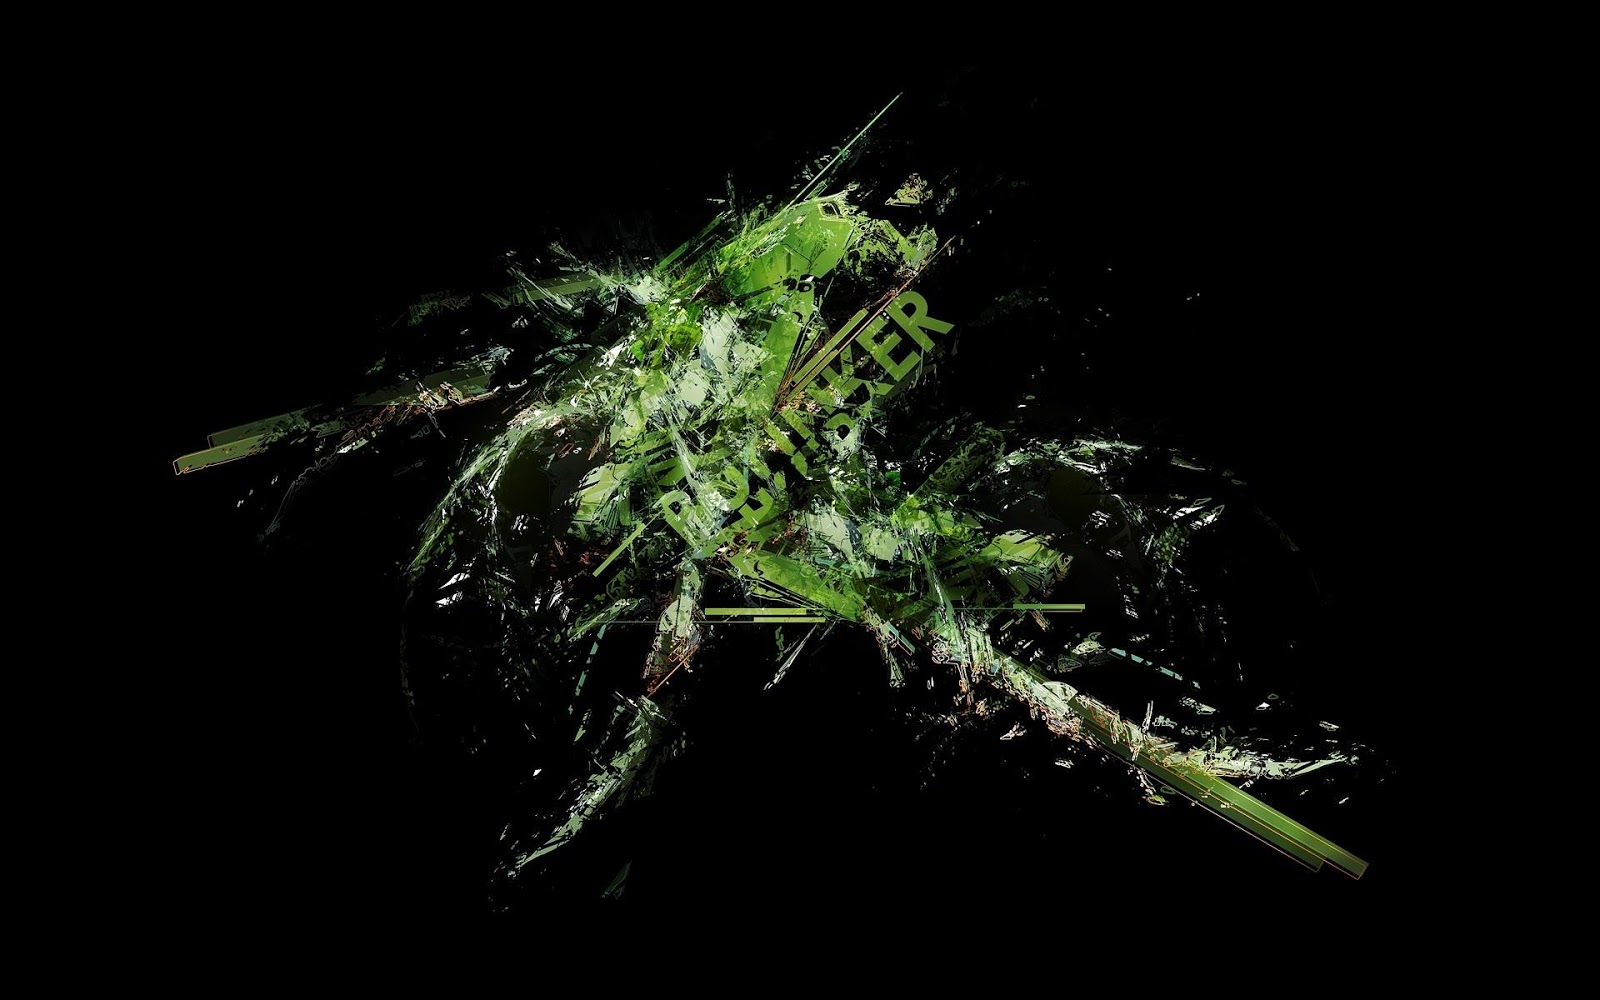 Abstract Green Black Download 1920x1200 1600x1000